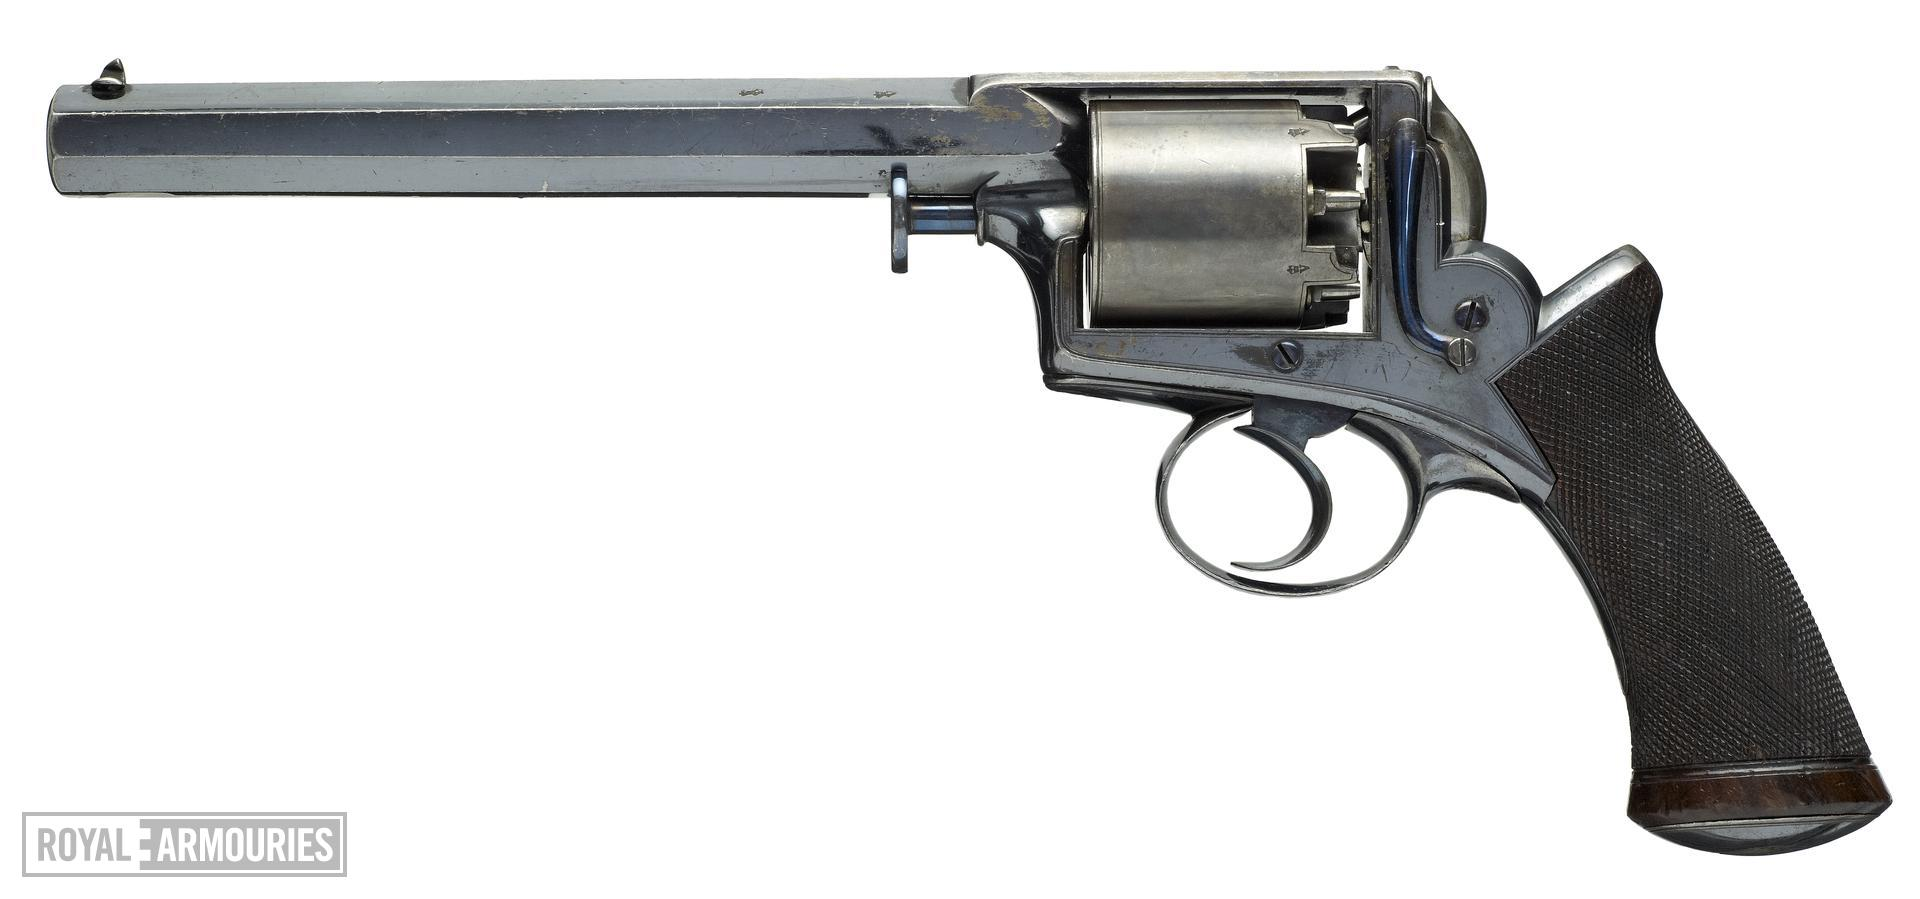 Percussion five-shot revolver - Adams Model 1851 Holster size. Retailed by Deane Adams & Deane, King William St